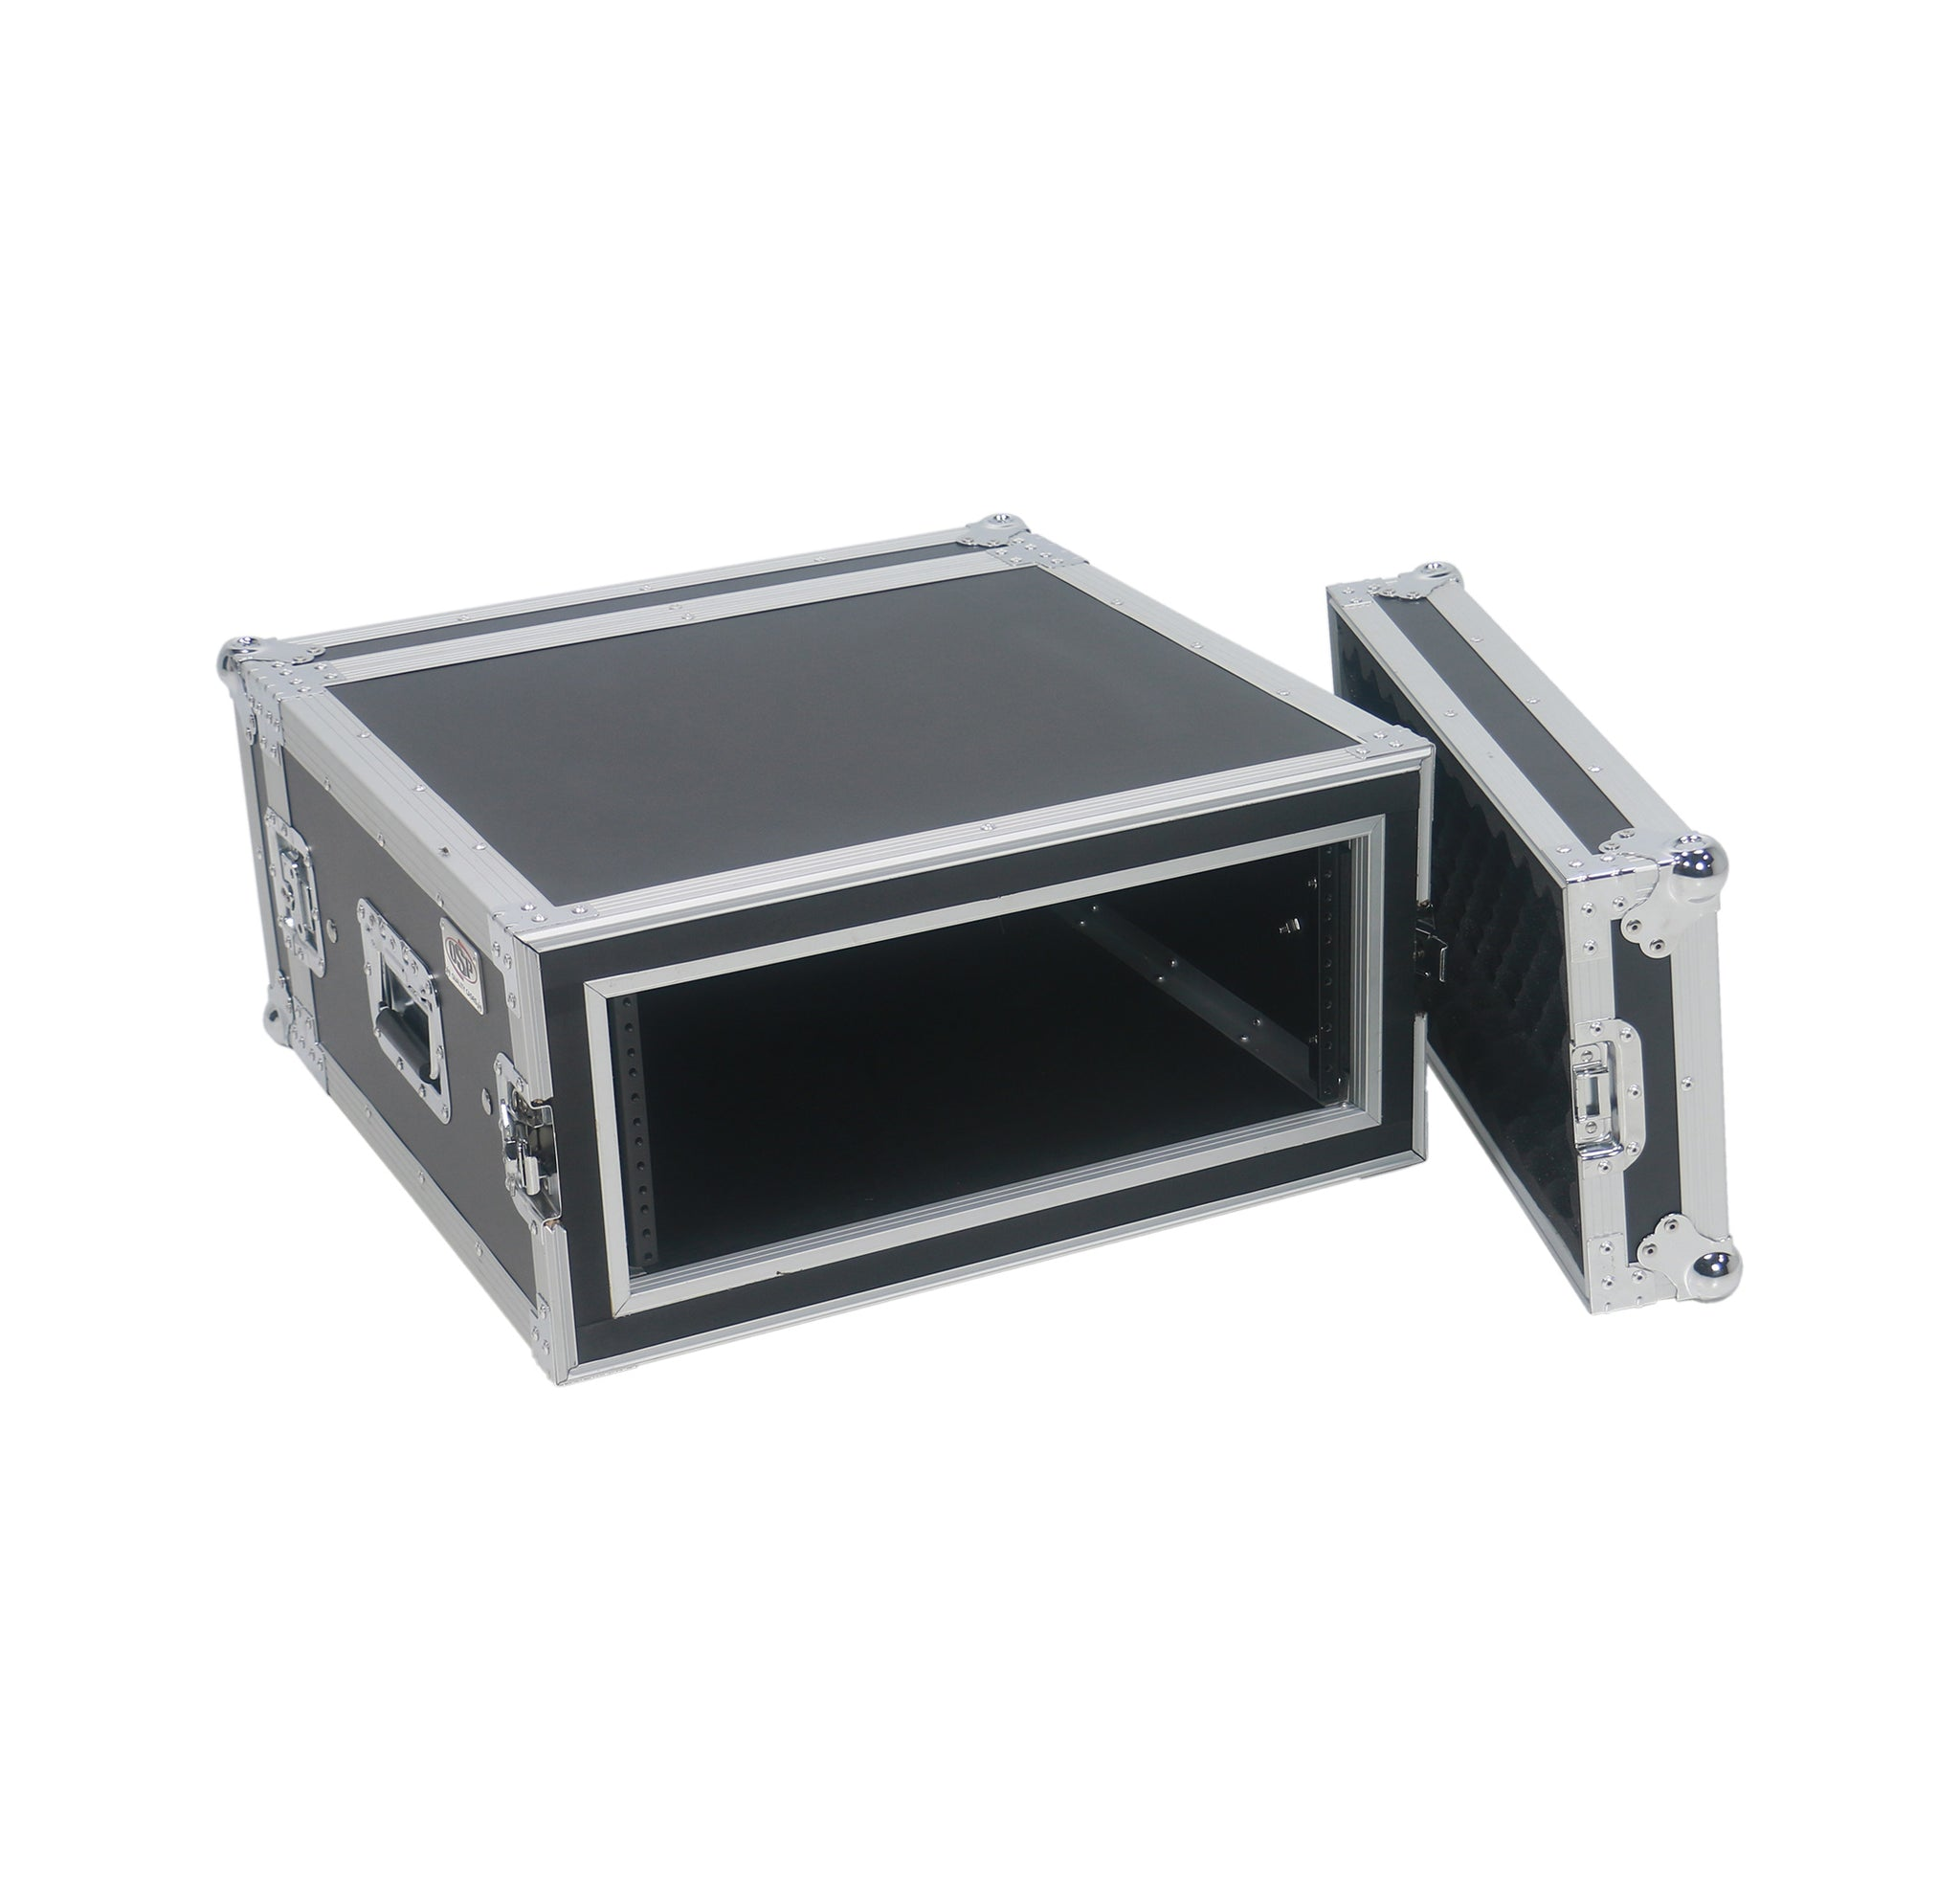 OSP SC4U-20 4 Space ATA Shock Amp Rack